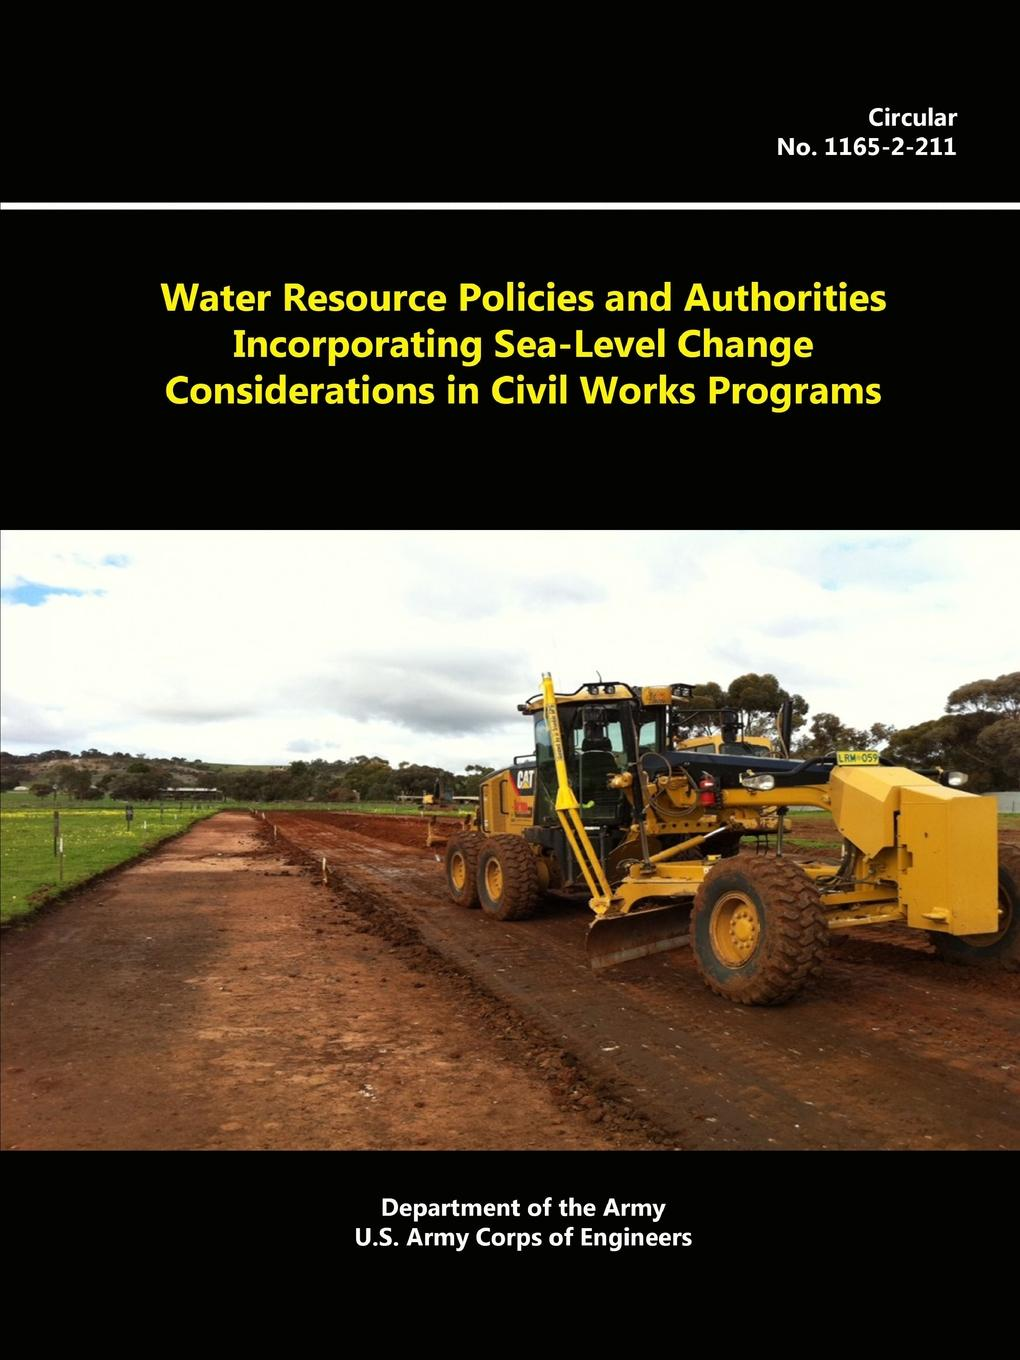 Department of the Army, U.S. Army Corps of Engineers Water Resource Policies And Authorities Incorporating Sea-level Change Considerations In Civil Works Programs michio kumagai climatic change and global warming of inland waters impacts and mitigation for ecosystems and societies